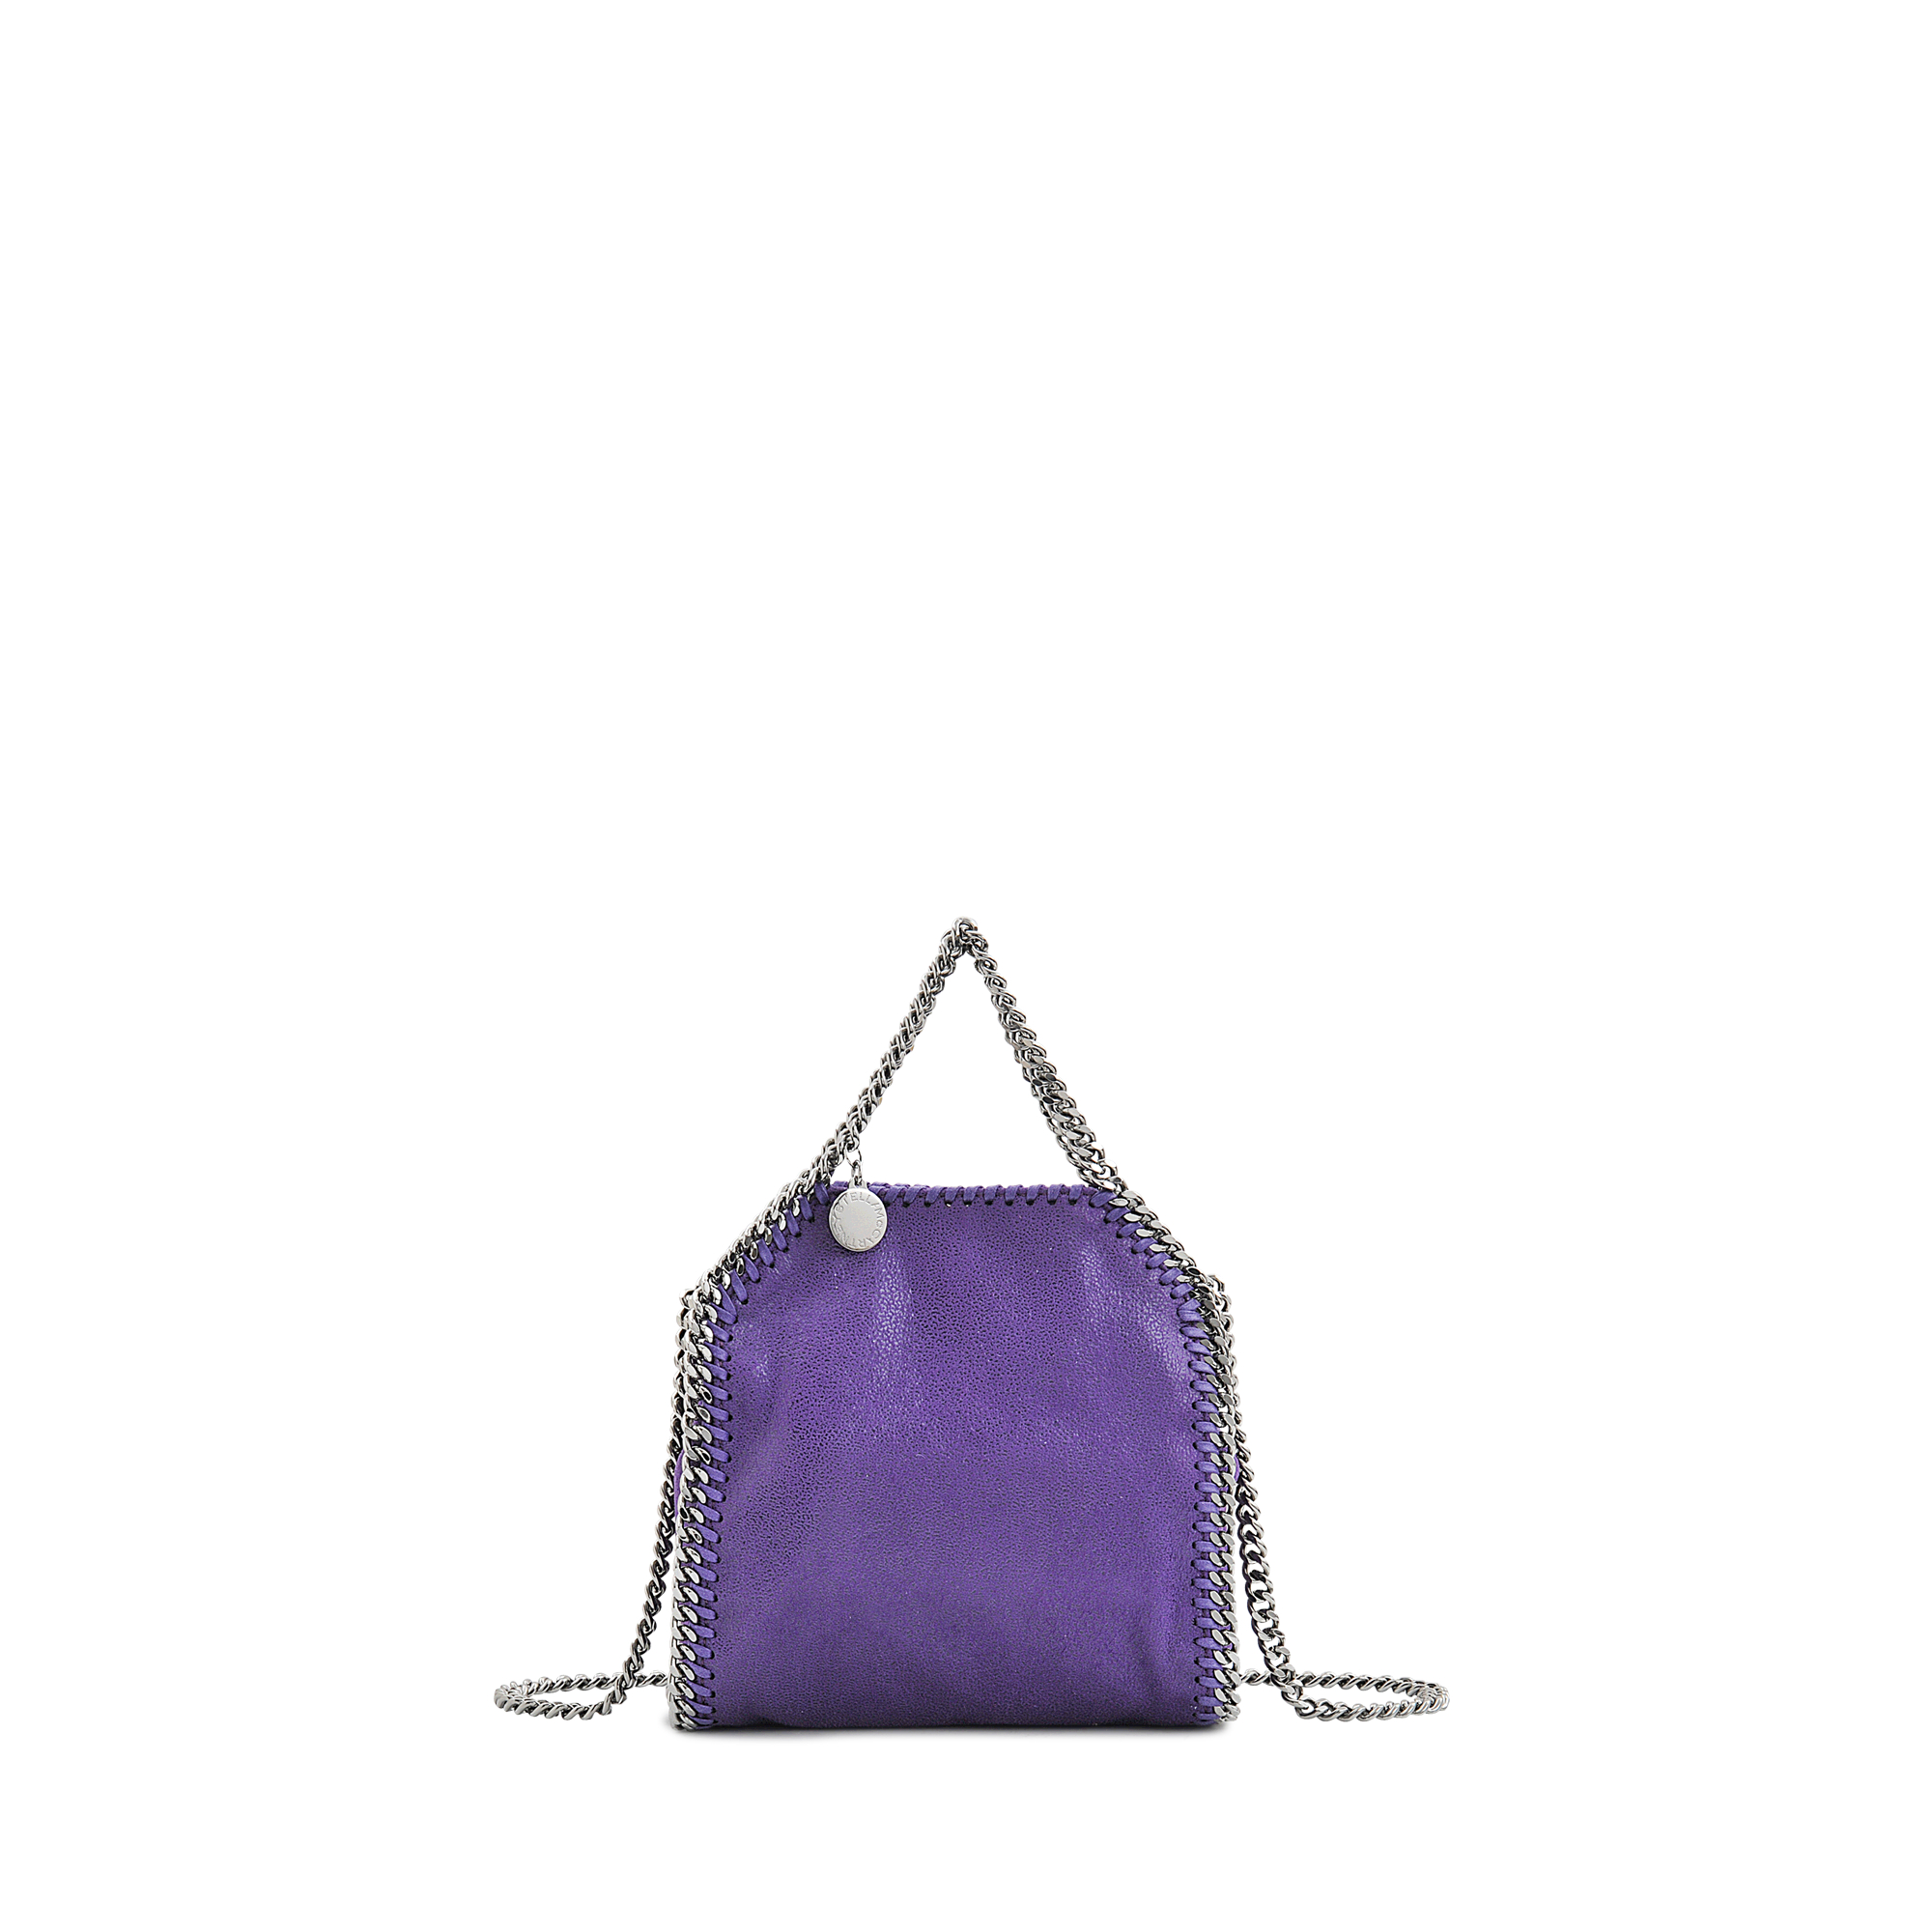 b5142c75767b Lyst - Stella McCartney Tiny Falabella Shaggy Deer Bag in Purple